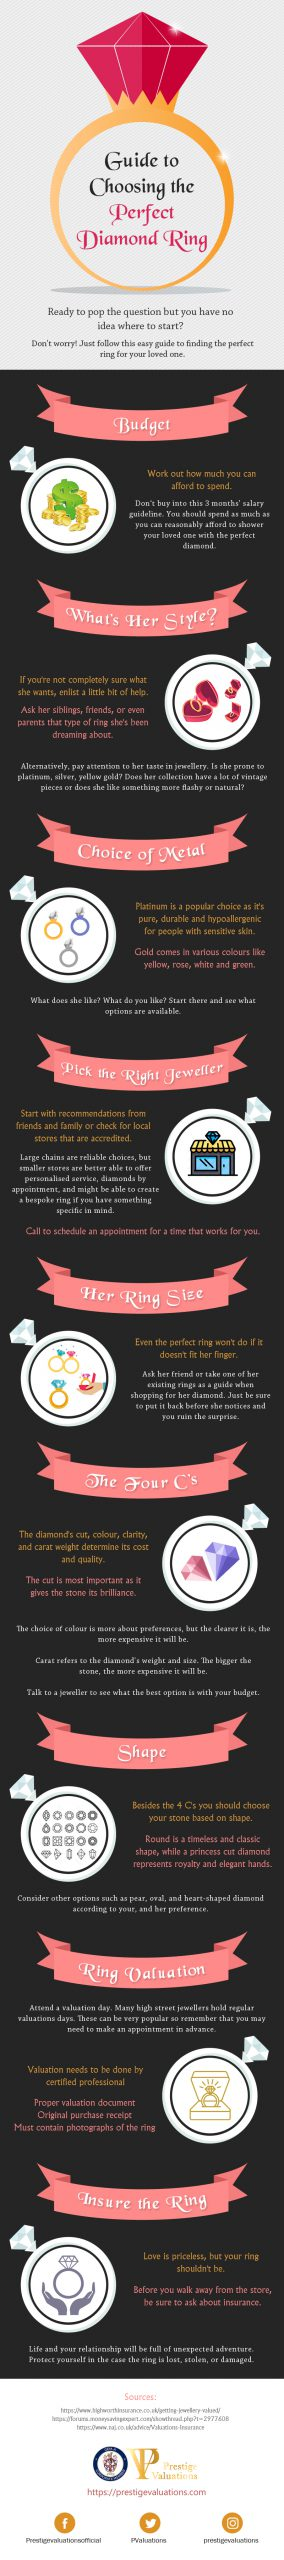 Guide to Choosing the Perfect Diamond Ring scaled